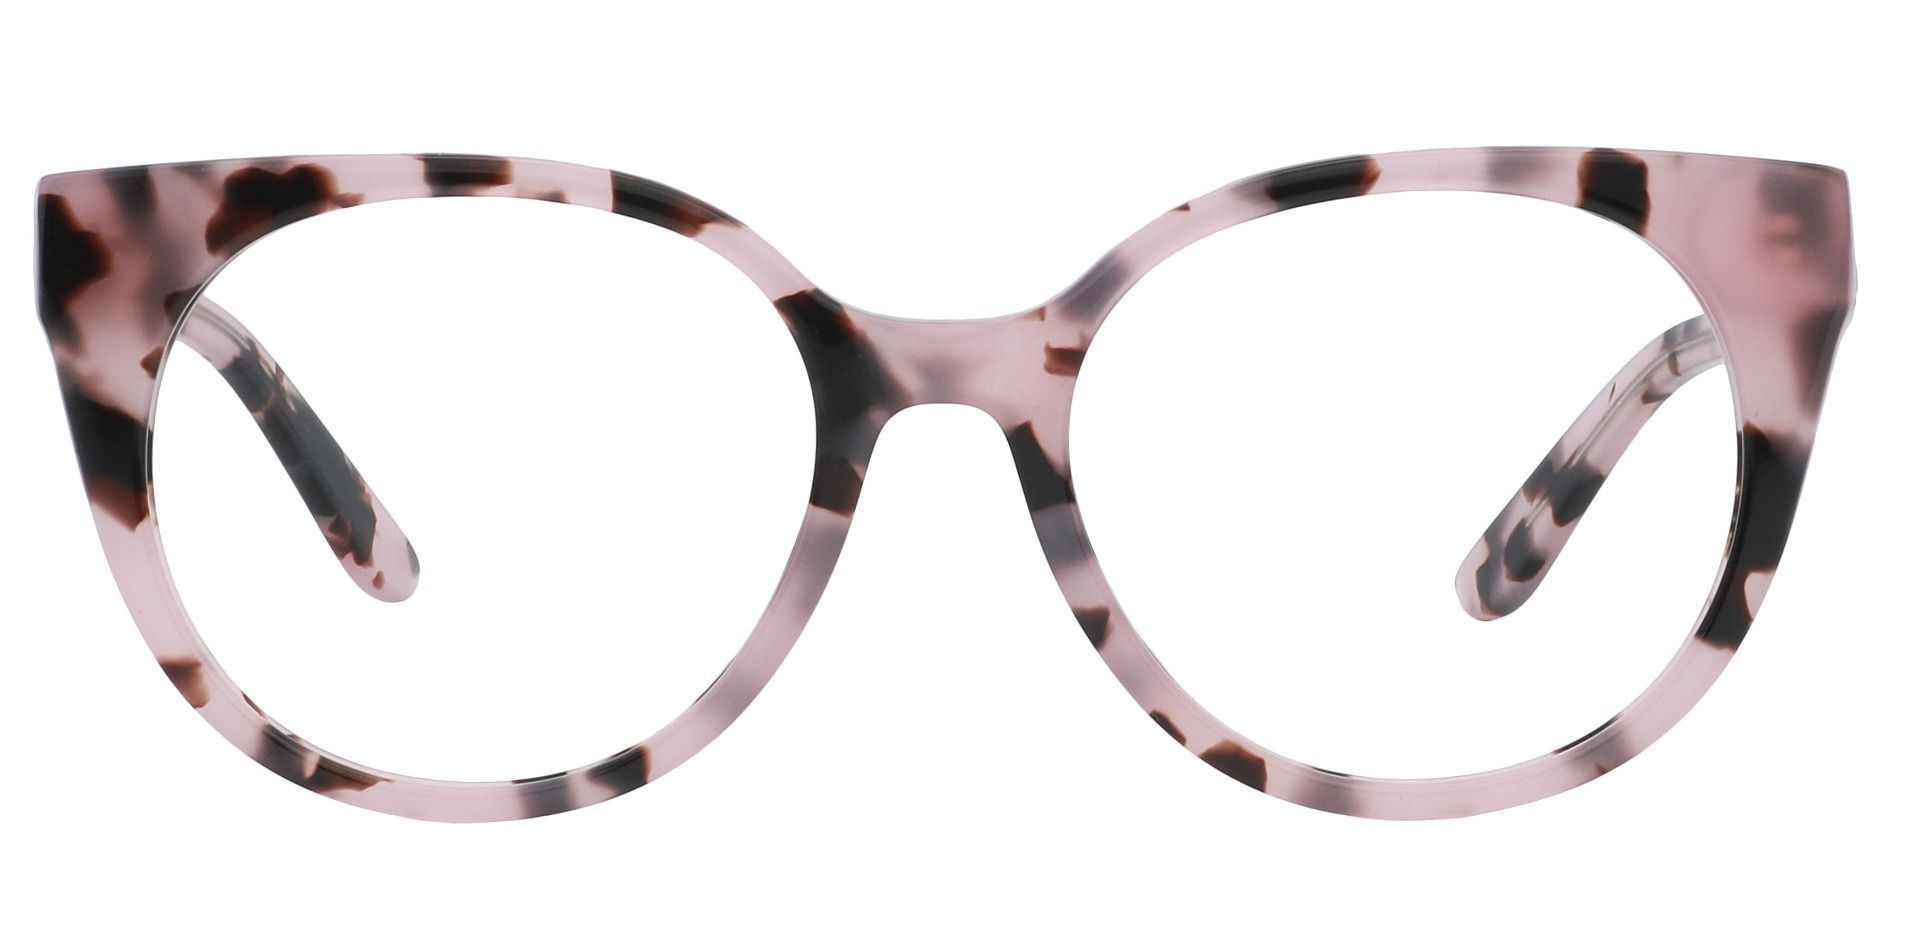 Balmoral Cat-Eye Prescription Glasses - Floral